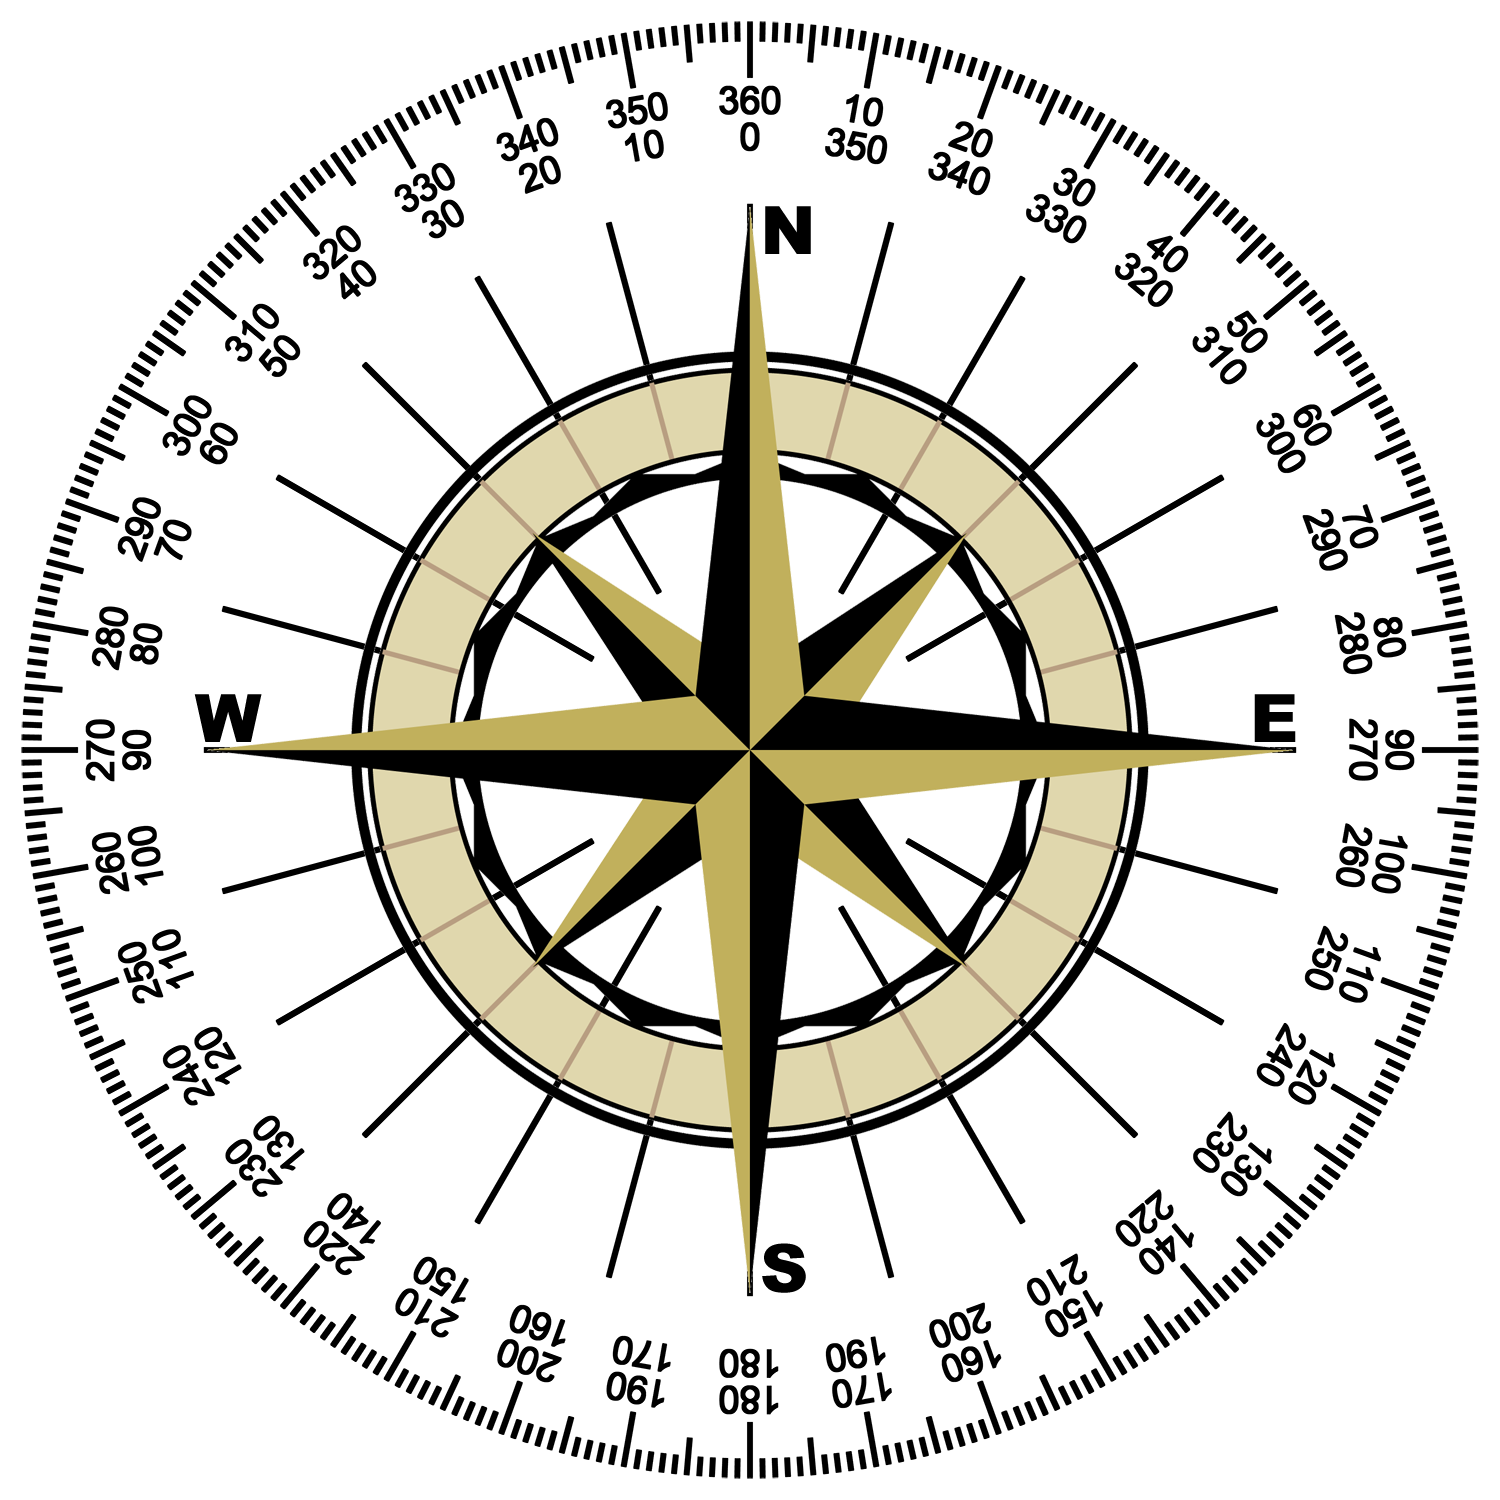 Compass Rose Png Download Number 29390 Daily Updated Free Icons And Png Images For Your Projects All Images Use To Fr Compass Drawing Compass Compass Rose